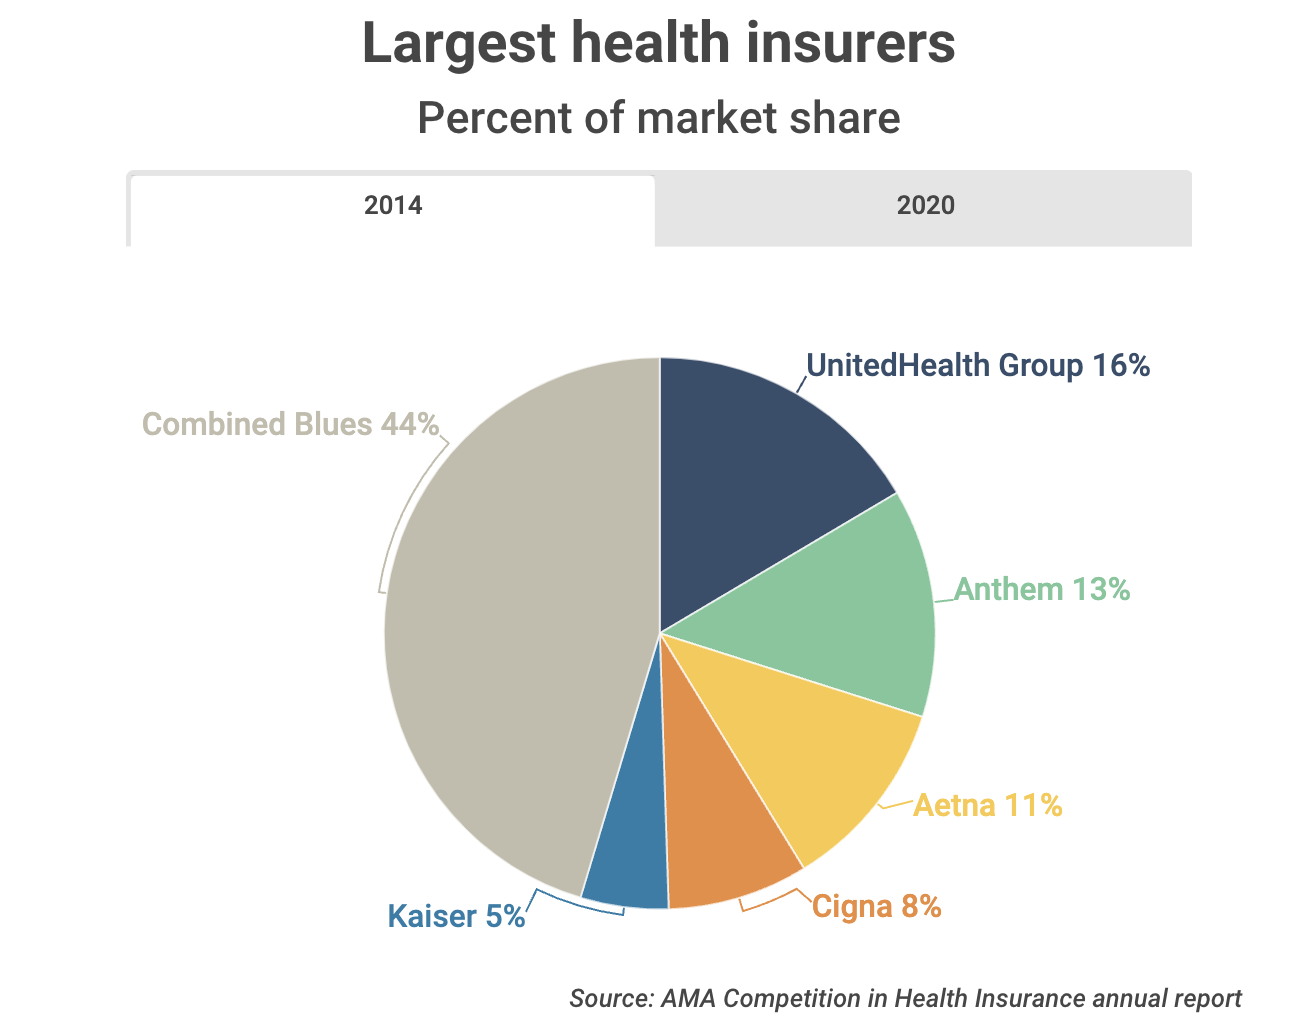 U.S. health insurance market concentration continues to increase